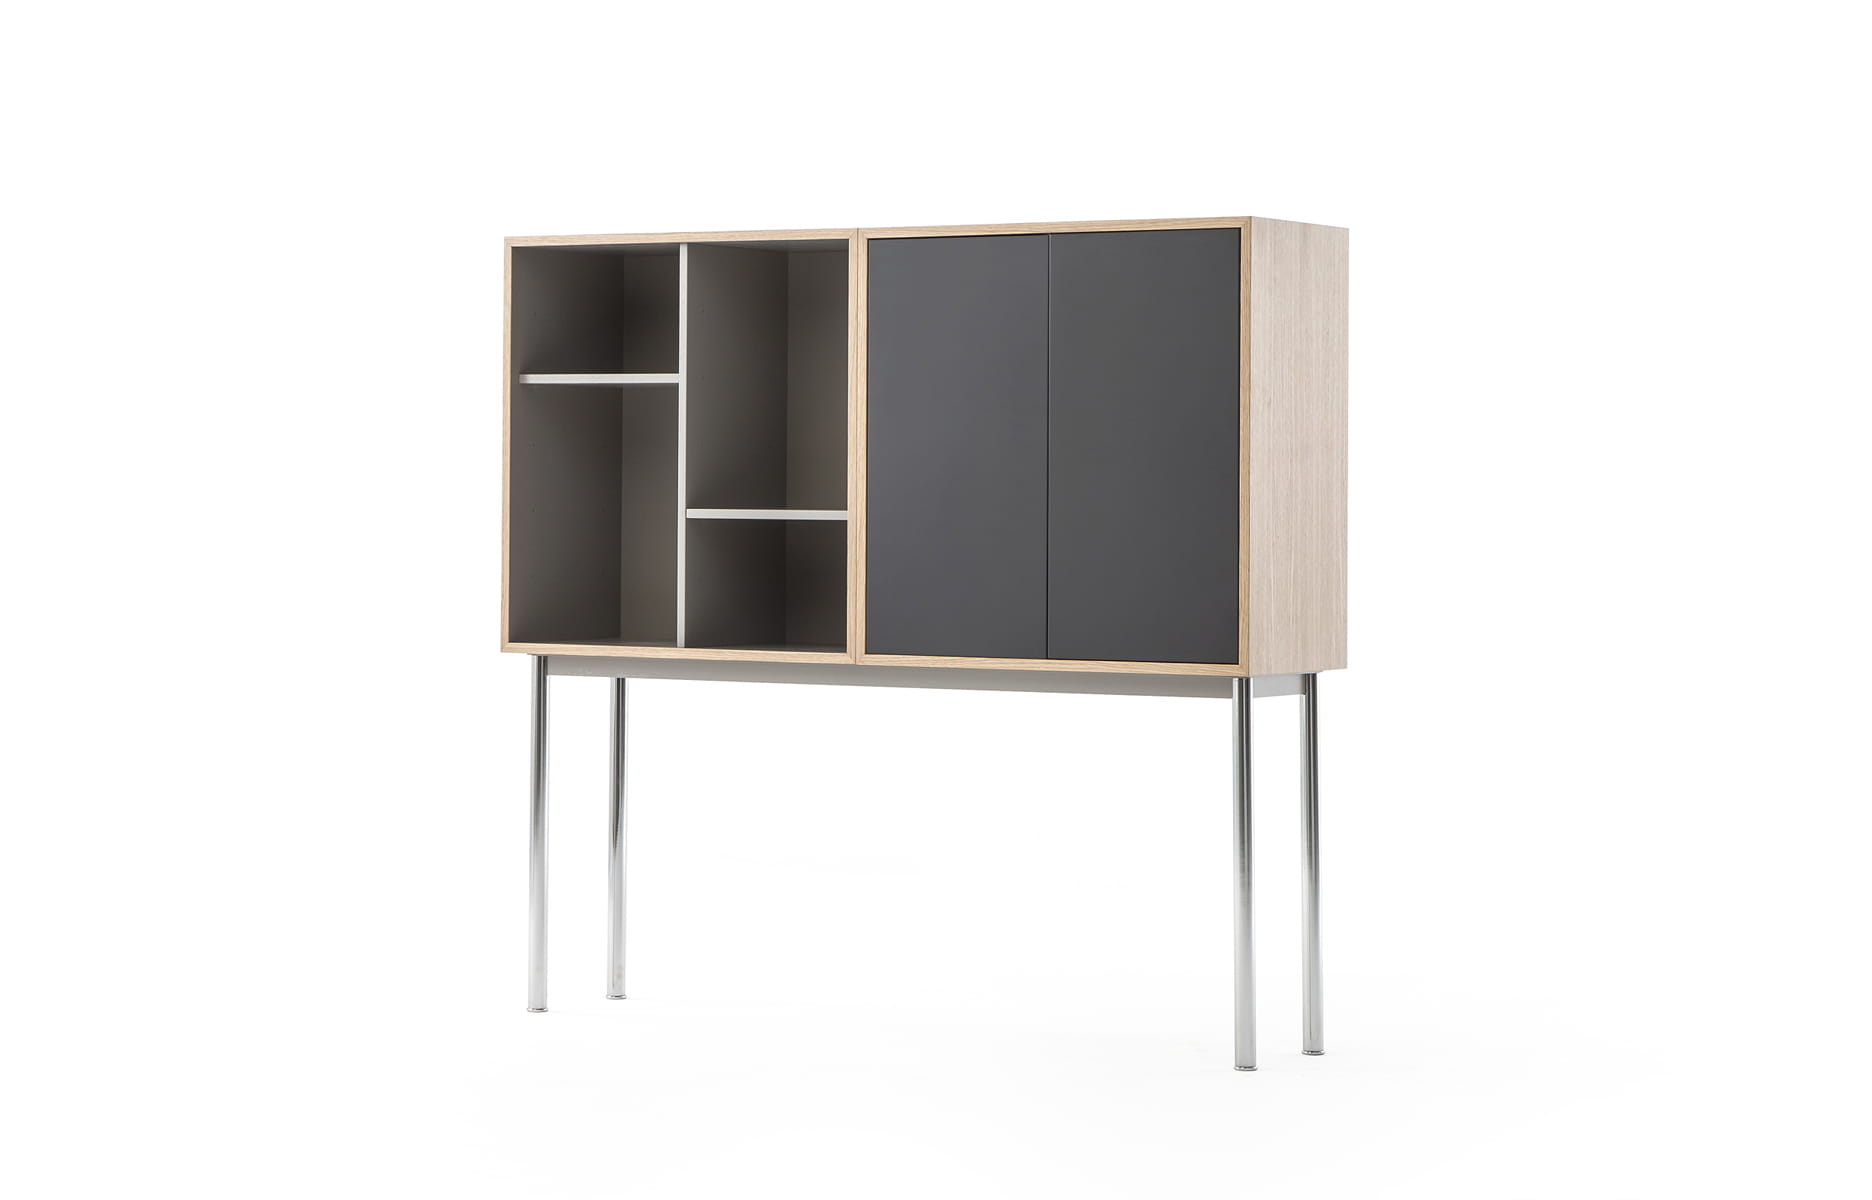 coup de jeune pour le casier standard de le corbusier ideat. Black Bedroom Furniture Sets. Home Design Ideas